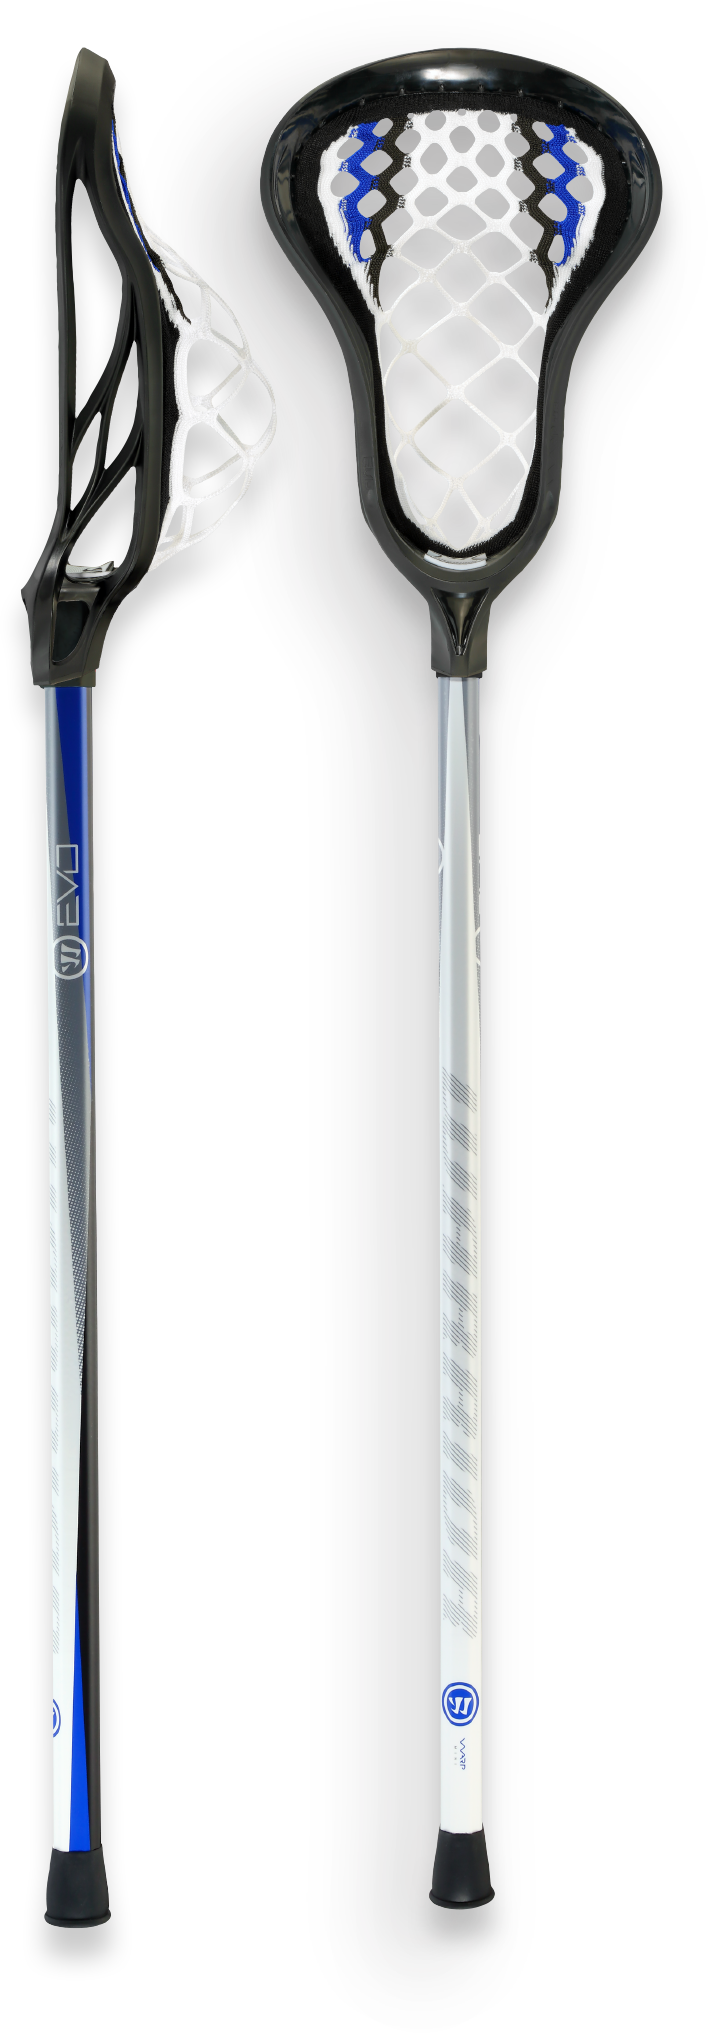 Lacrosse stick, side view